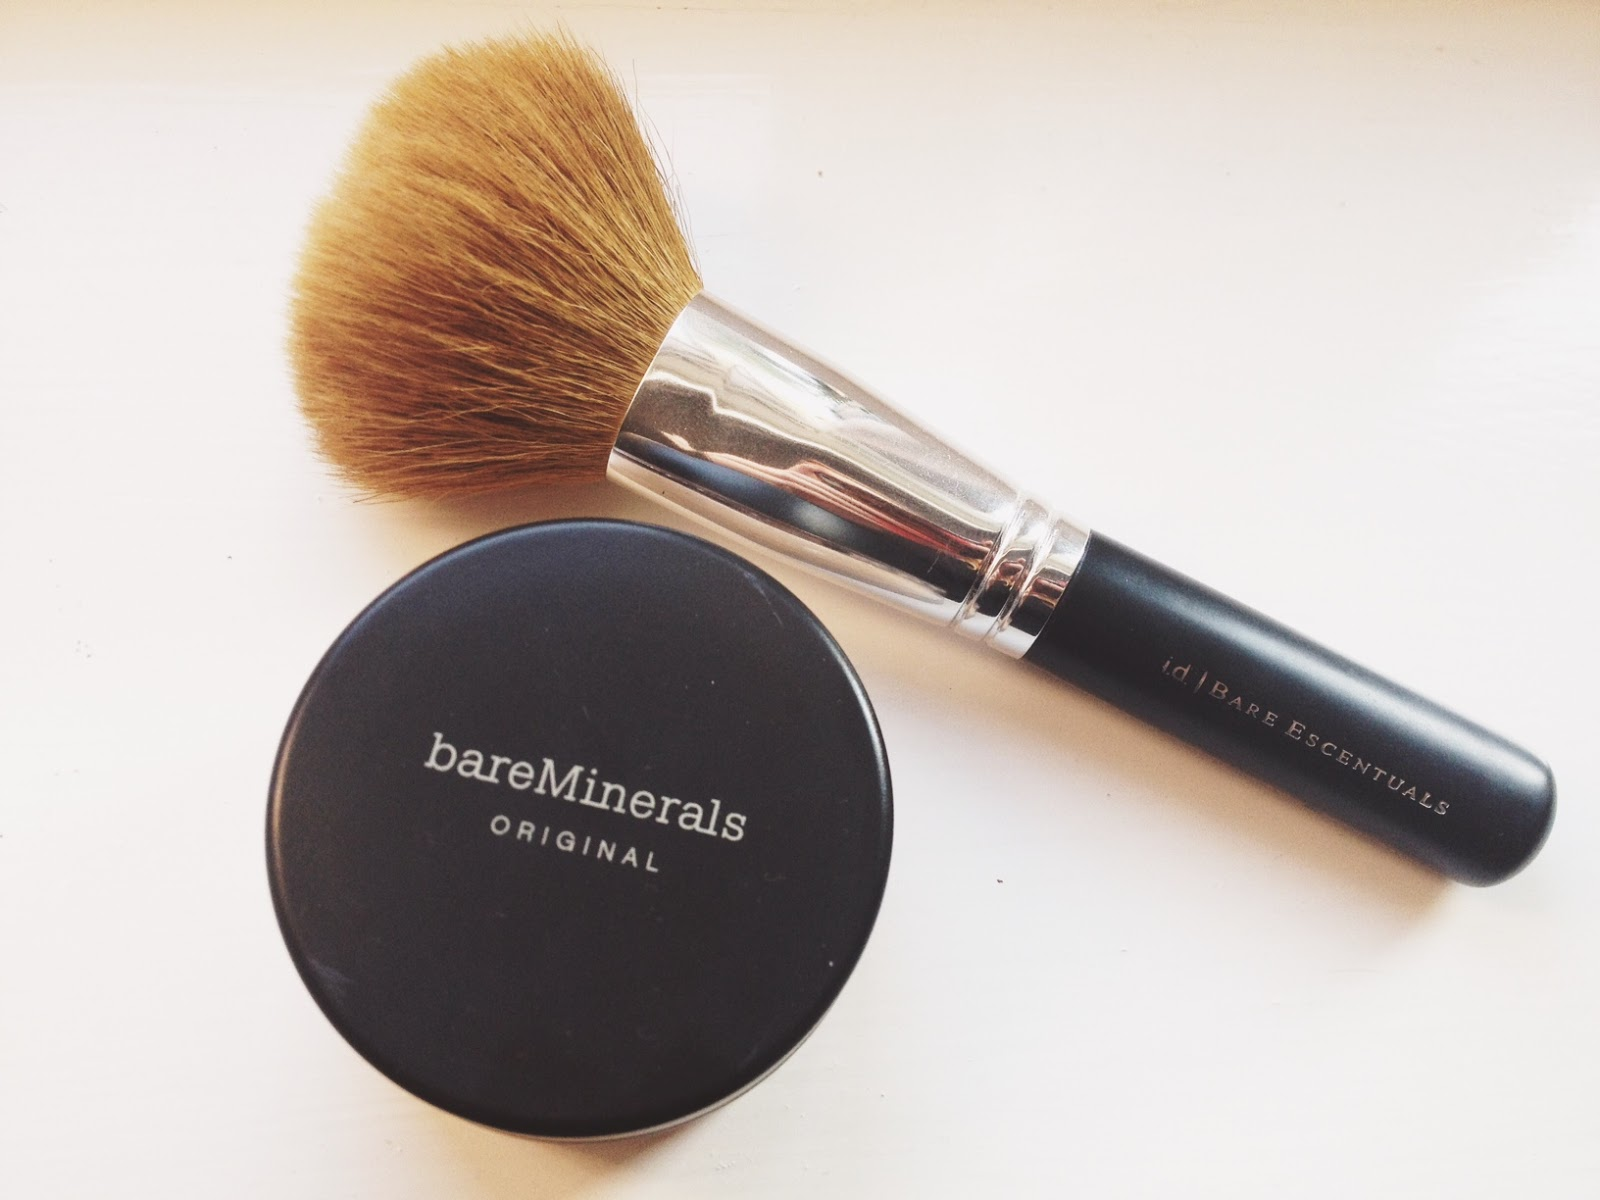 Bareminerals Original Mineral Foundation Review Dalry